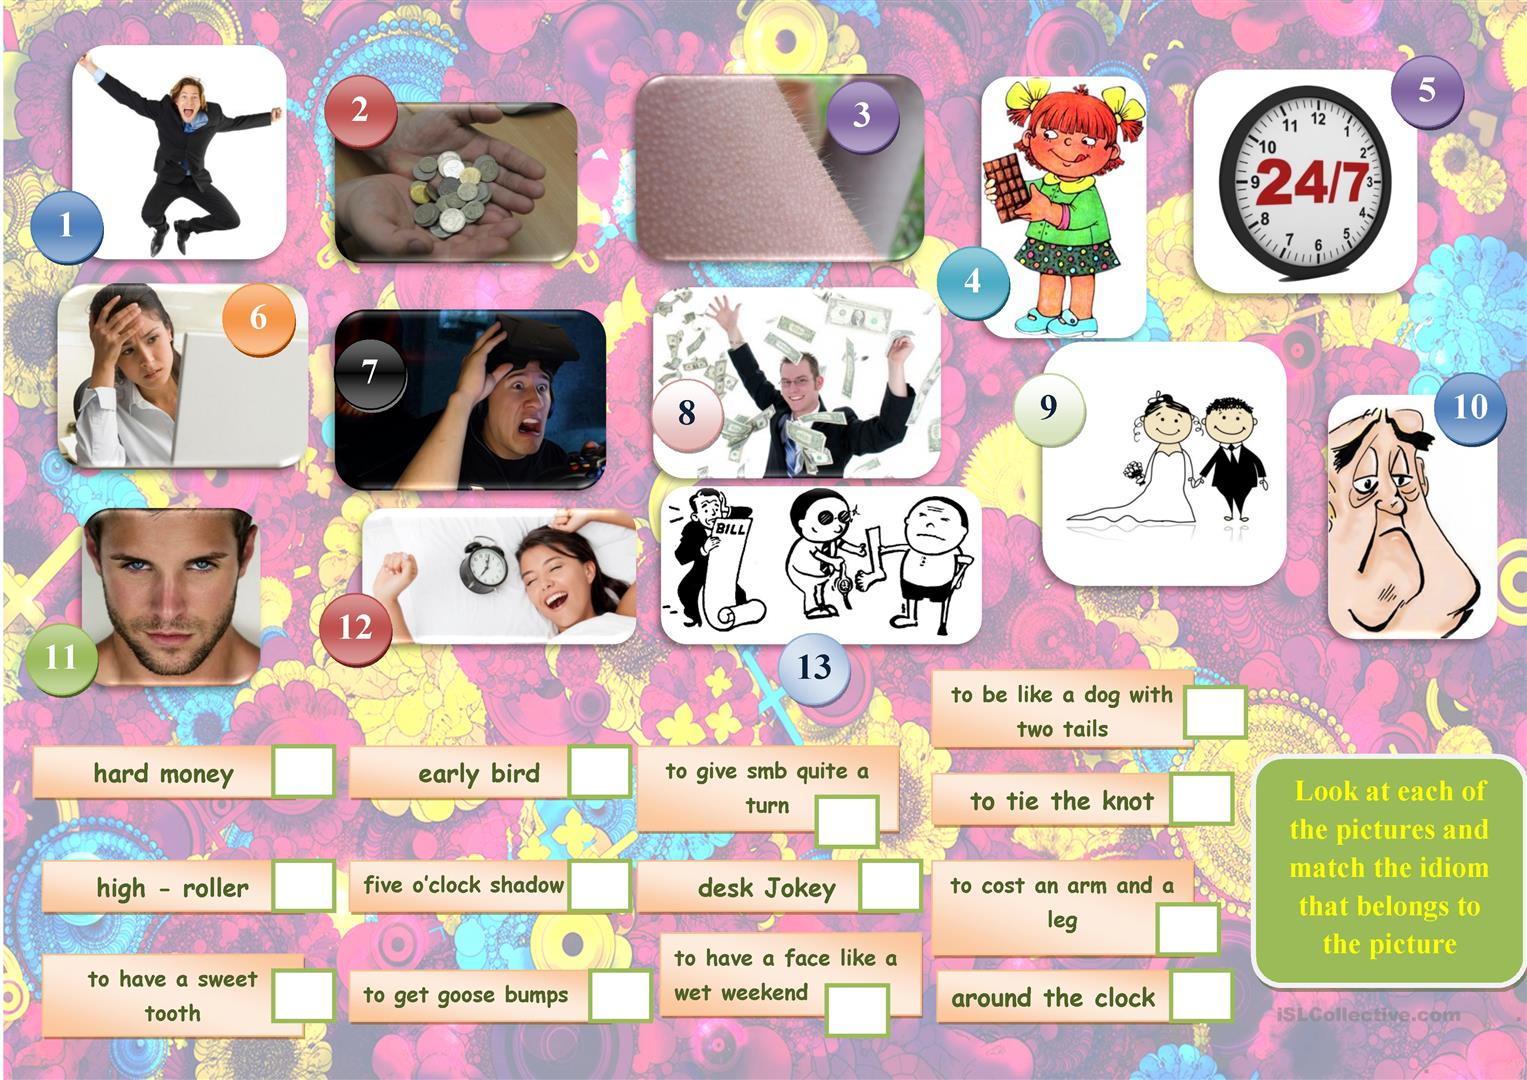 Match Idioms To Pictures Worksheet